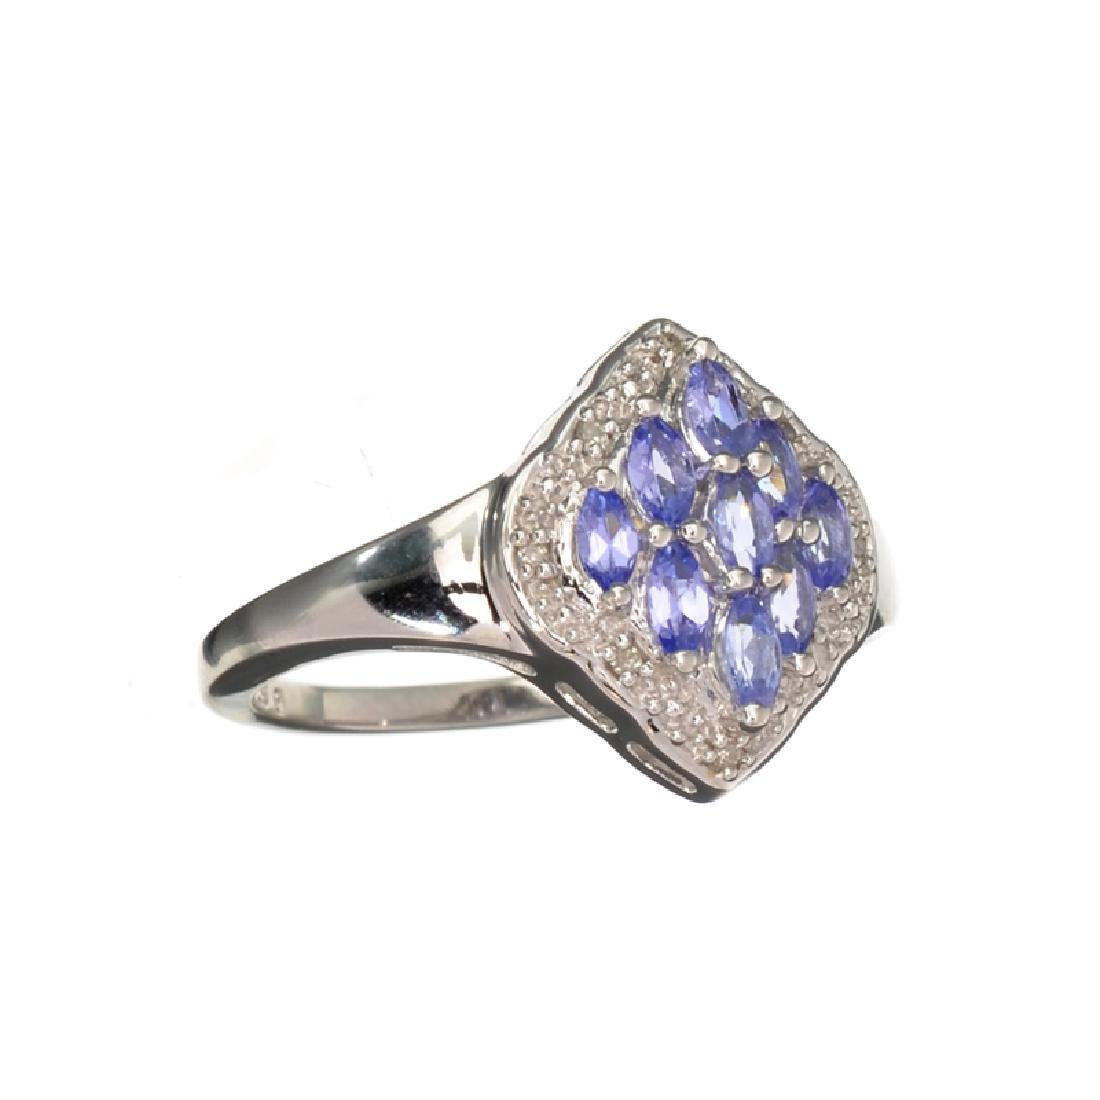 APP: 1k Fine Jewelry 0.55CT Marquise Cut Tanzanite And